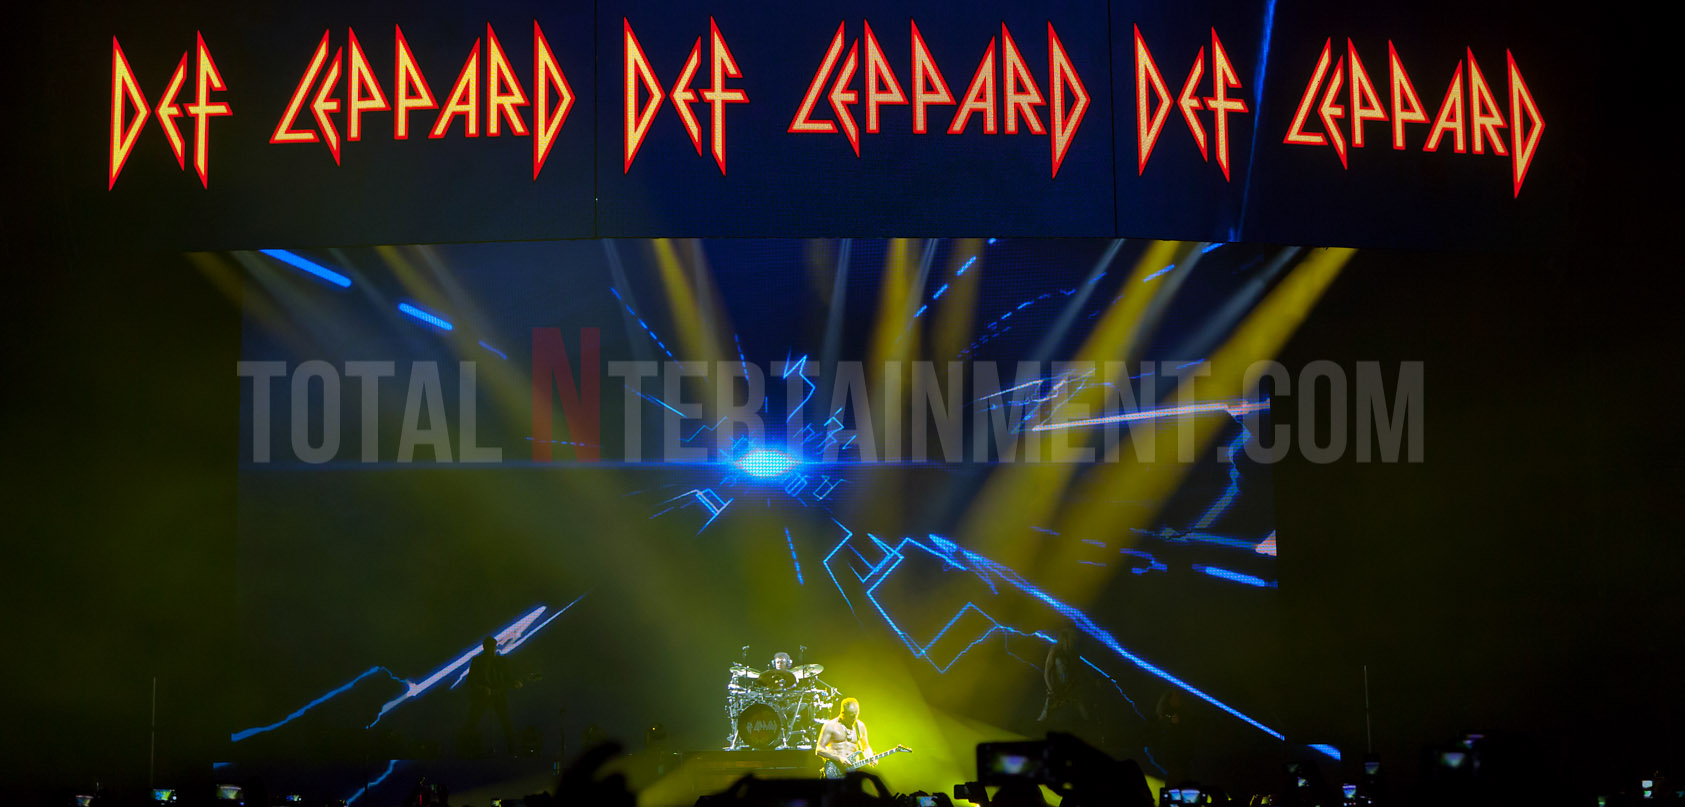 Def Leppard cause 'Hysteria' at Manchester Arena